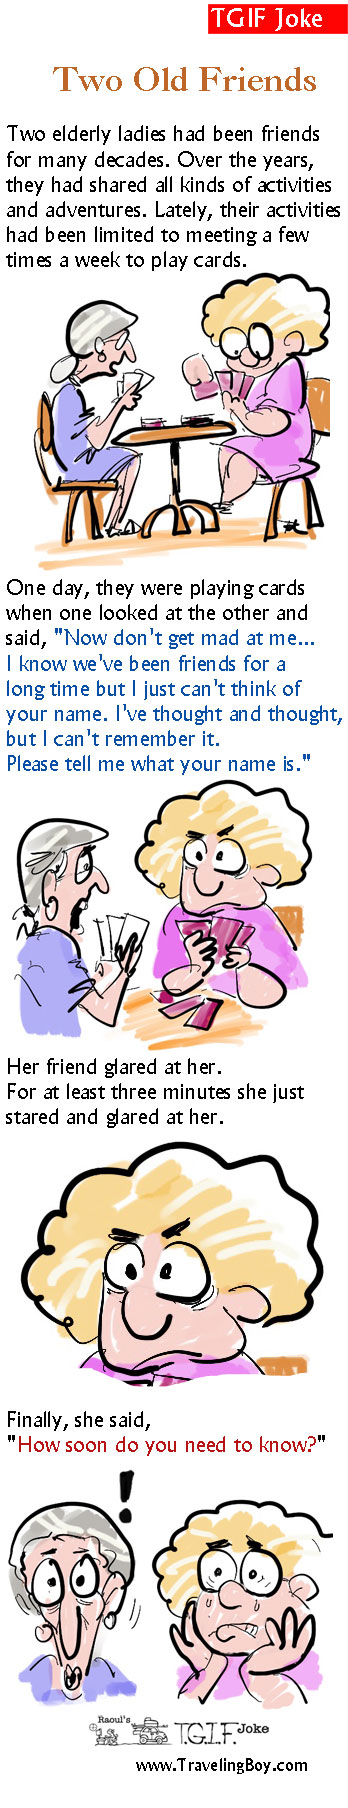 Two Old Friends cartoon